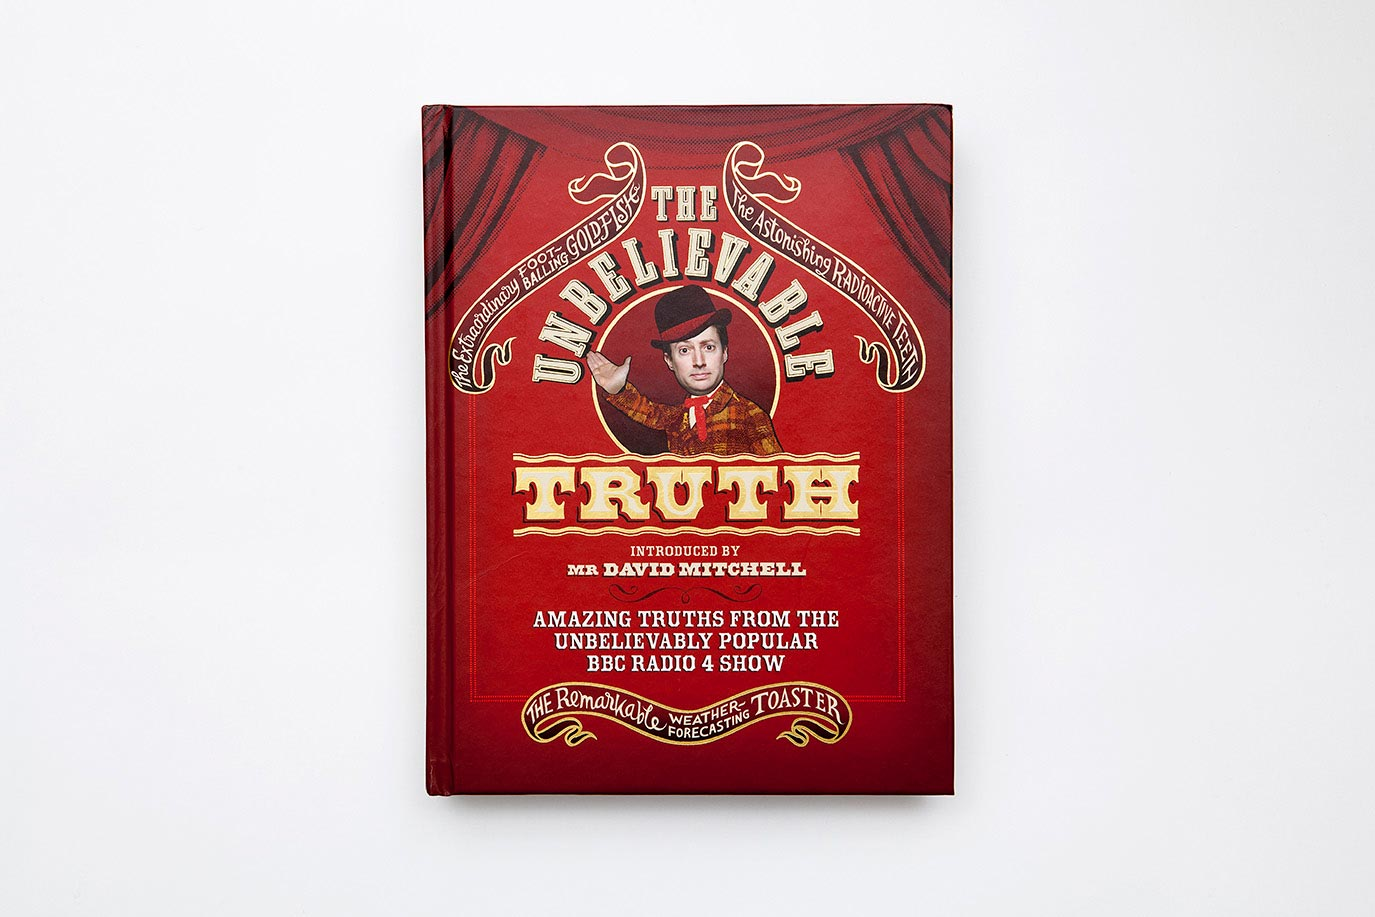 The Unbelievable Truth graphic